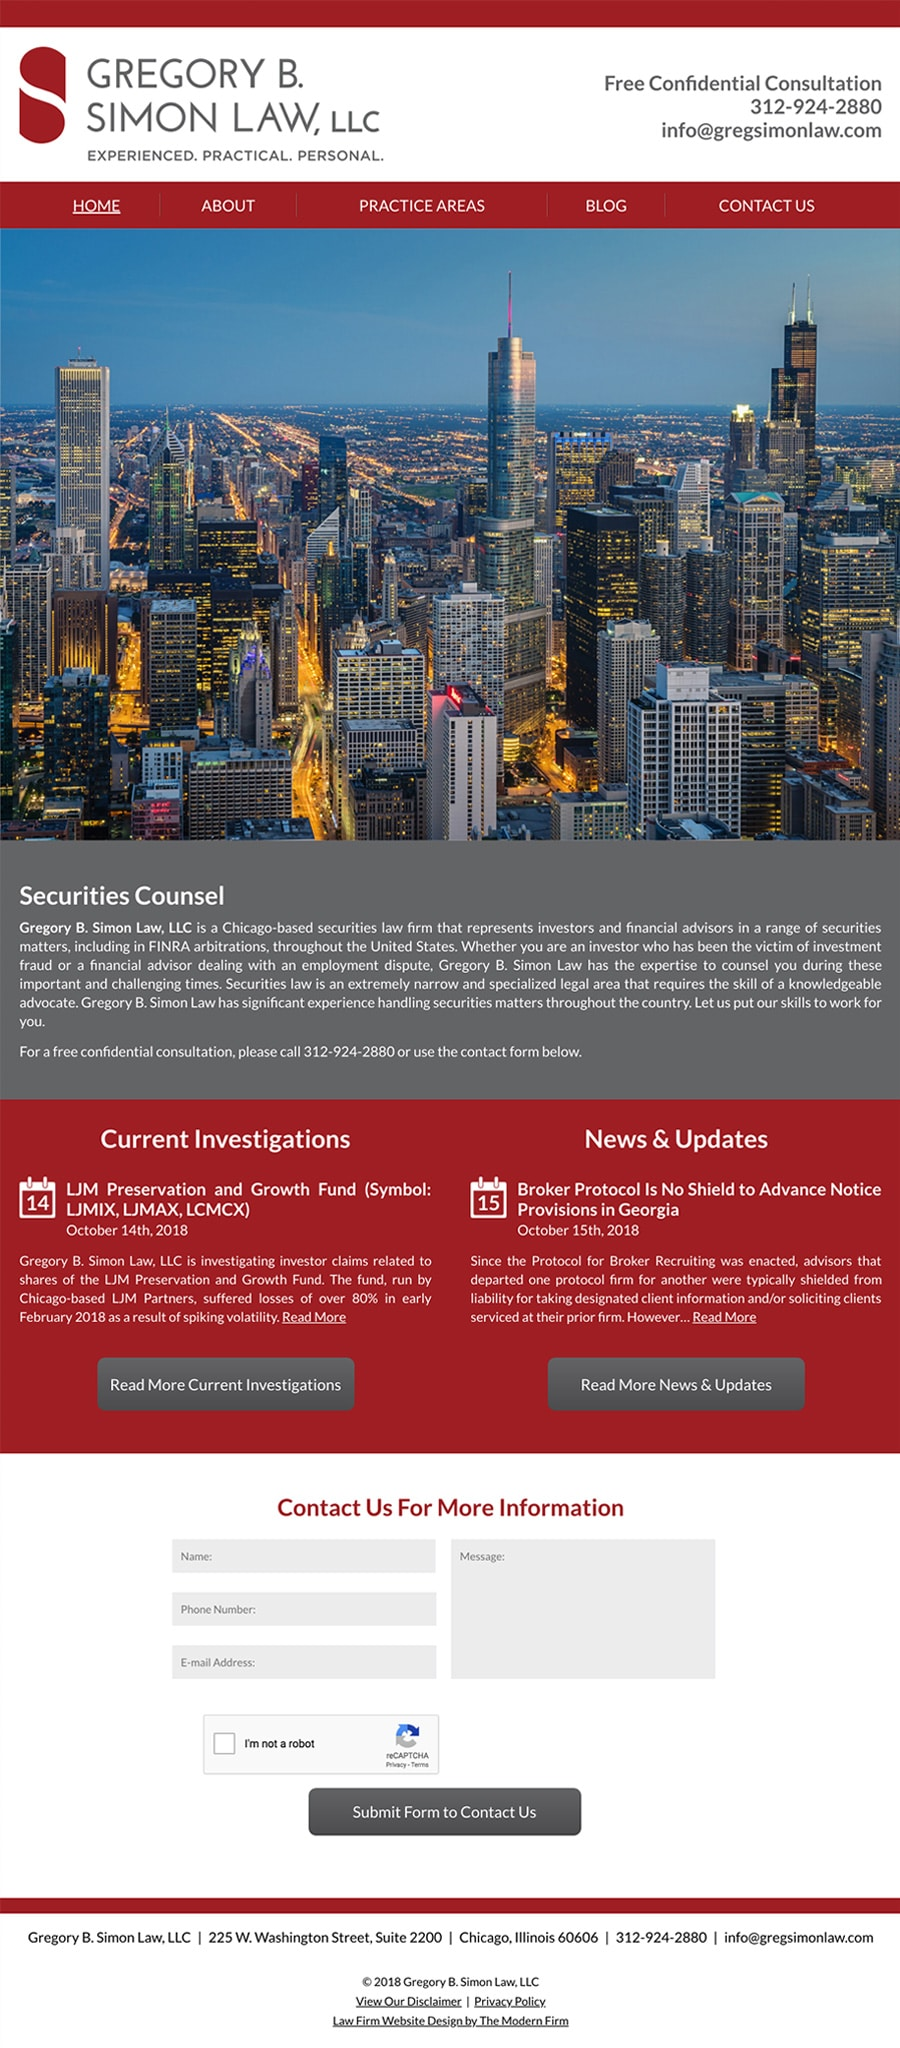 Law Firm Website Design for Gregory B. Simon Law, LLC